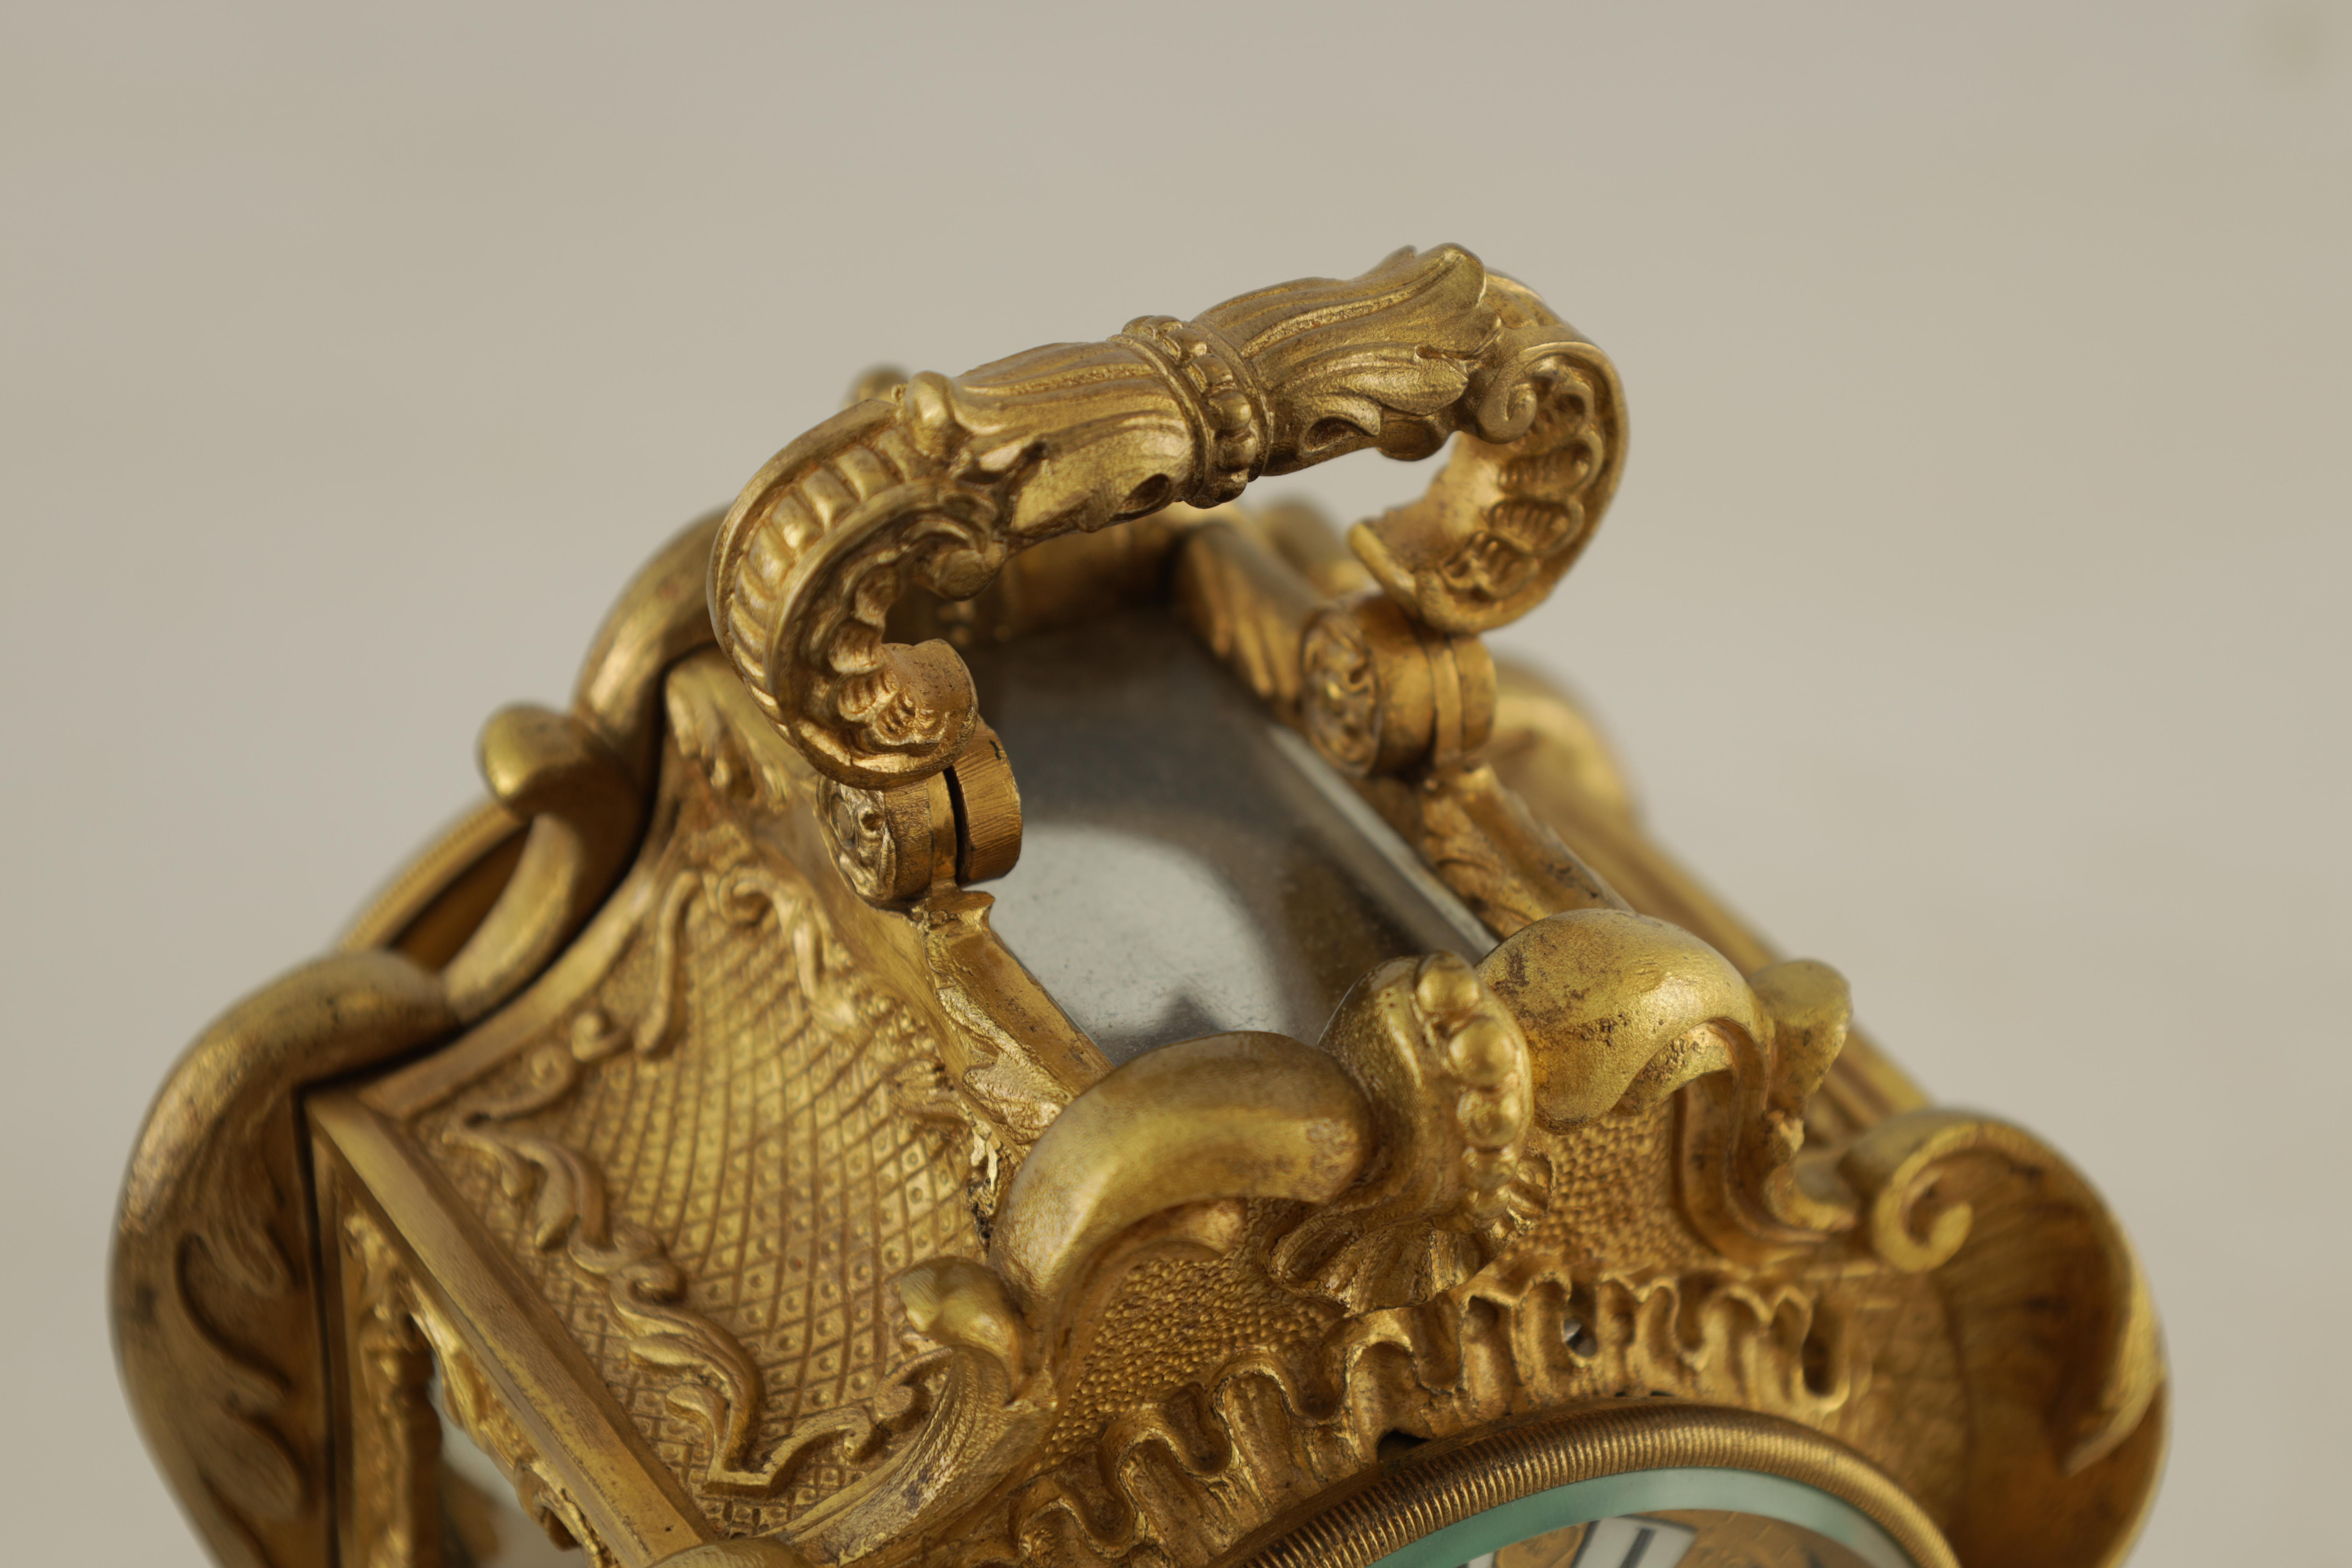 PAUL GARNIER, PARIS A MID 19TH CENTURY FRENCH TRAVELLING MANTEL CLOCK the gilt bronze rococo style - Image 8 of 13